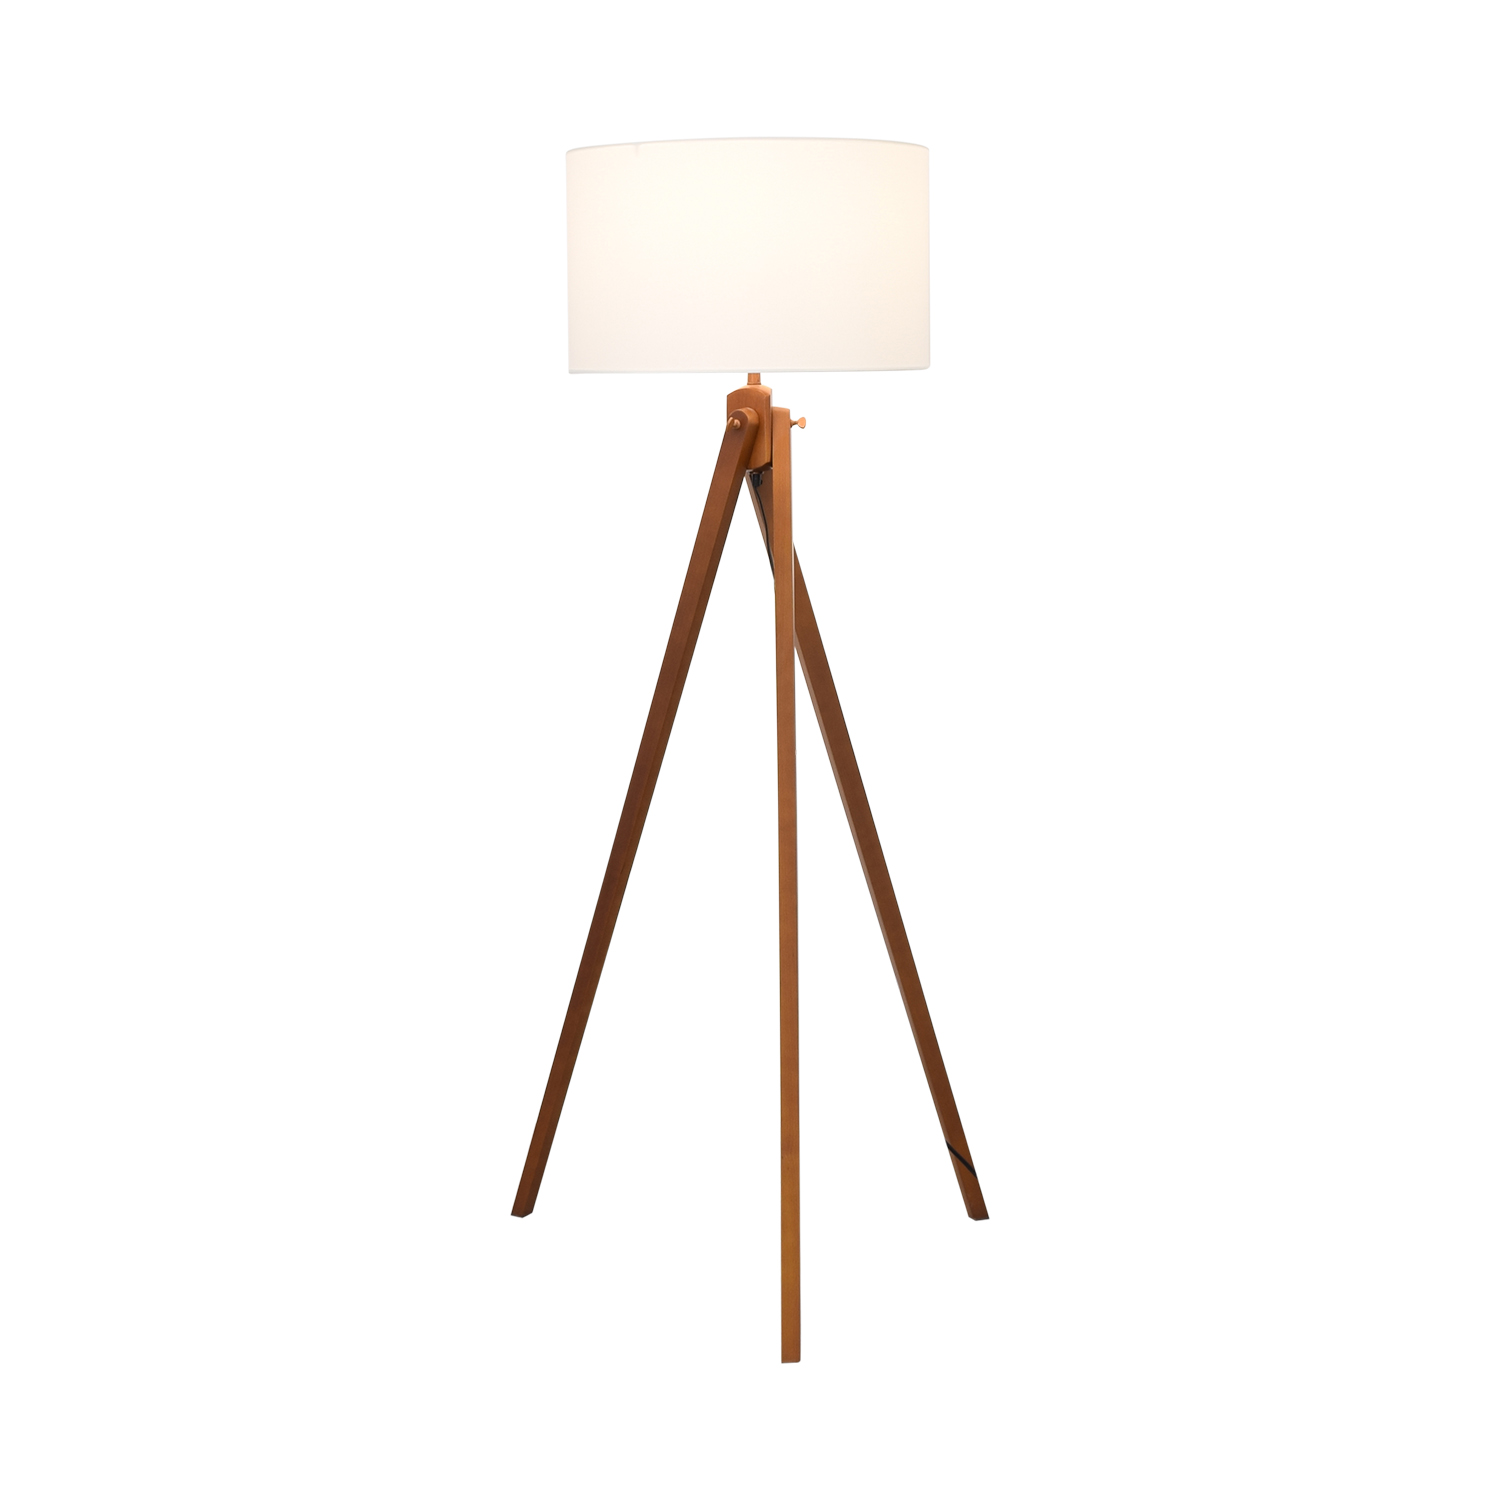 Modani Boden Floor Lamp / Decor